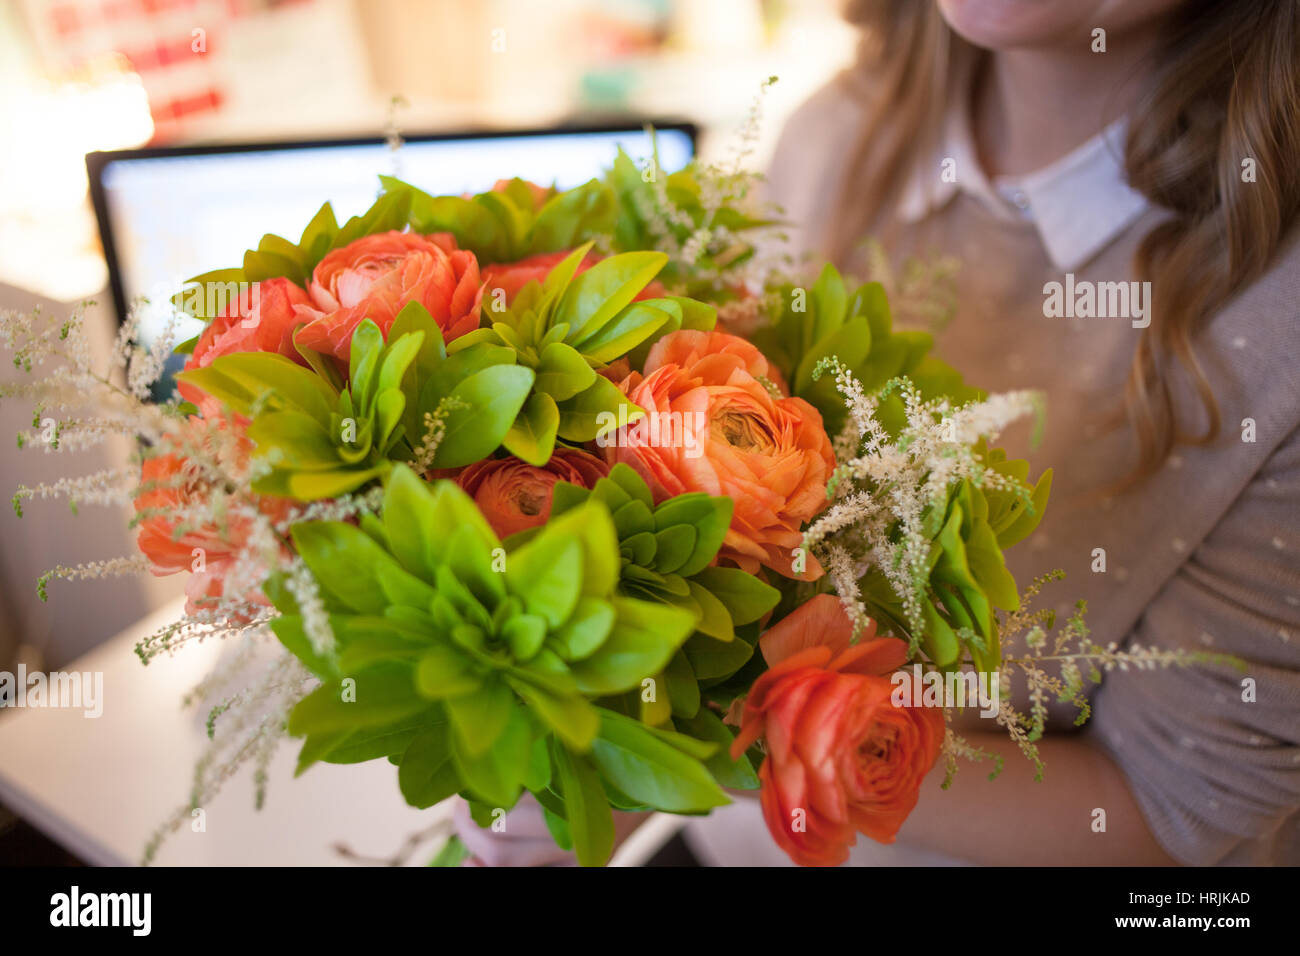 Flower Delivery To The Office Young Woman Holding Beautiful Bouquet